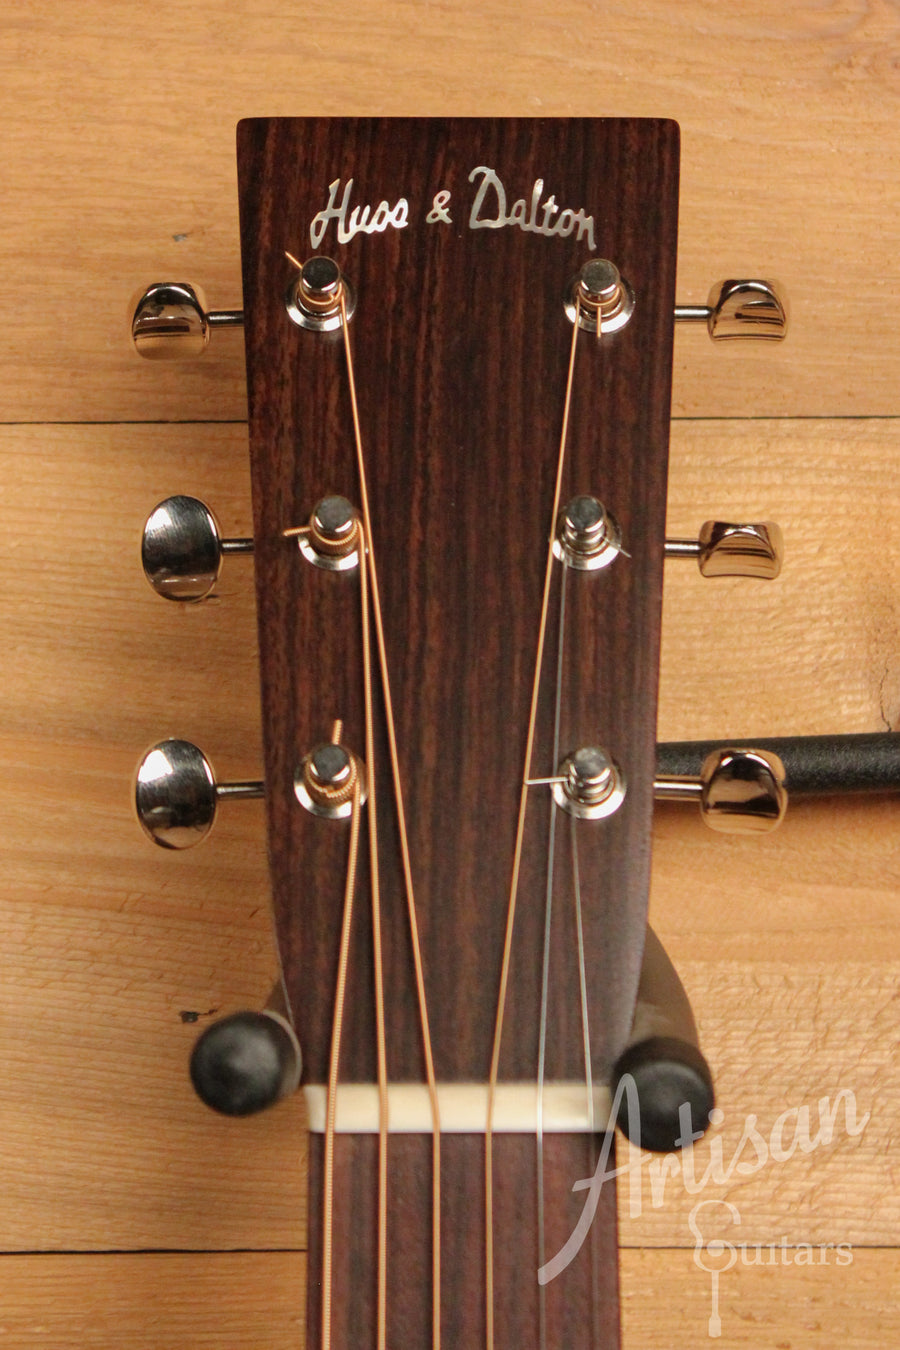 Huss and Dalton Road Edition Dreadnought - Sitka Spruce and Indian Rosewood ID-11387